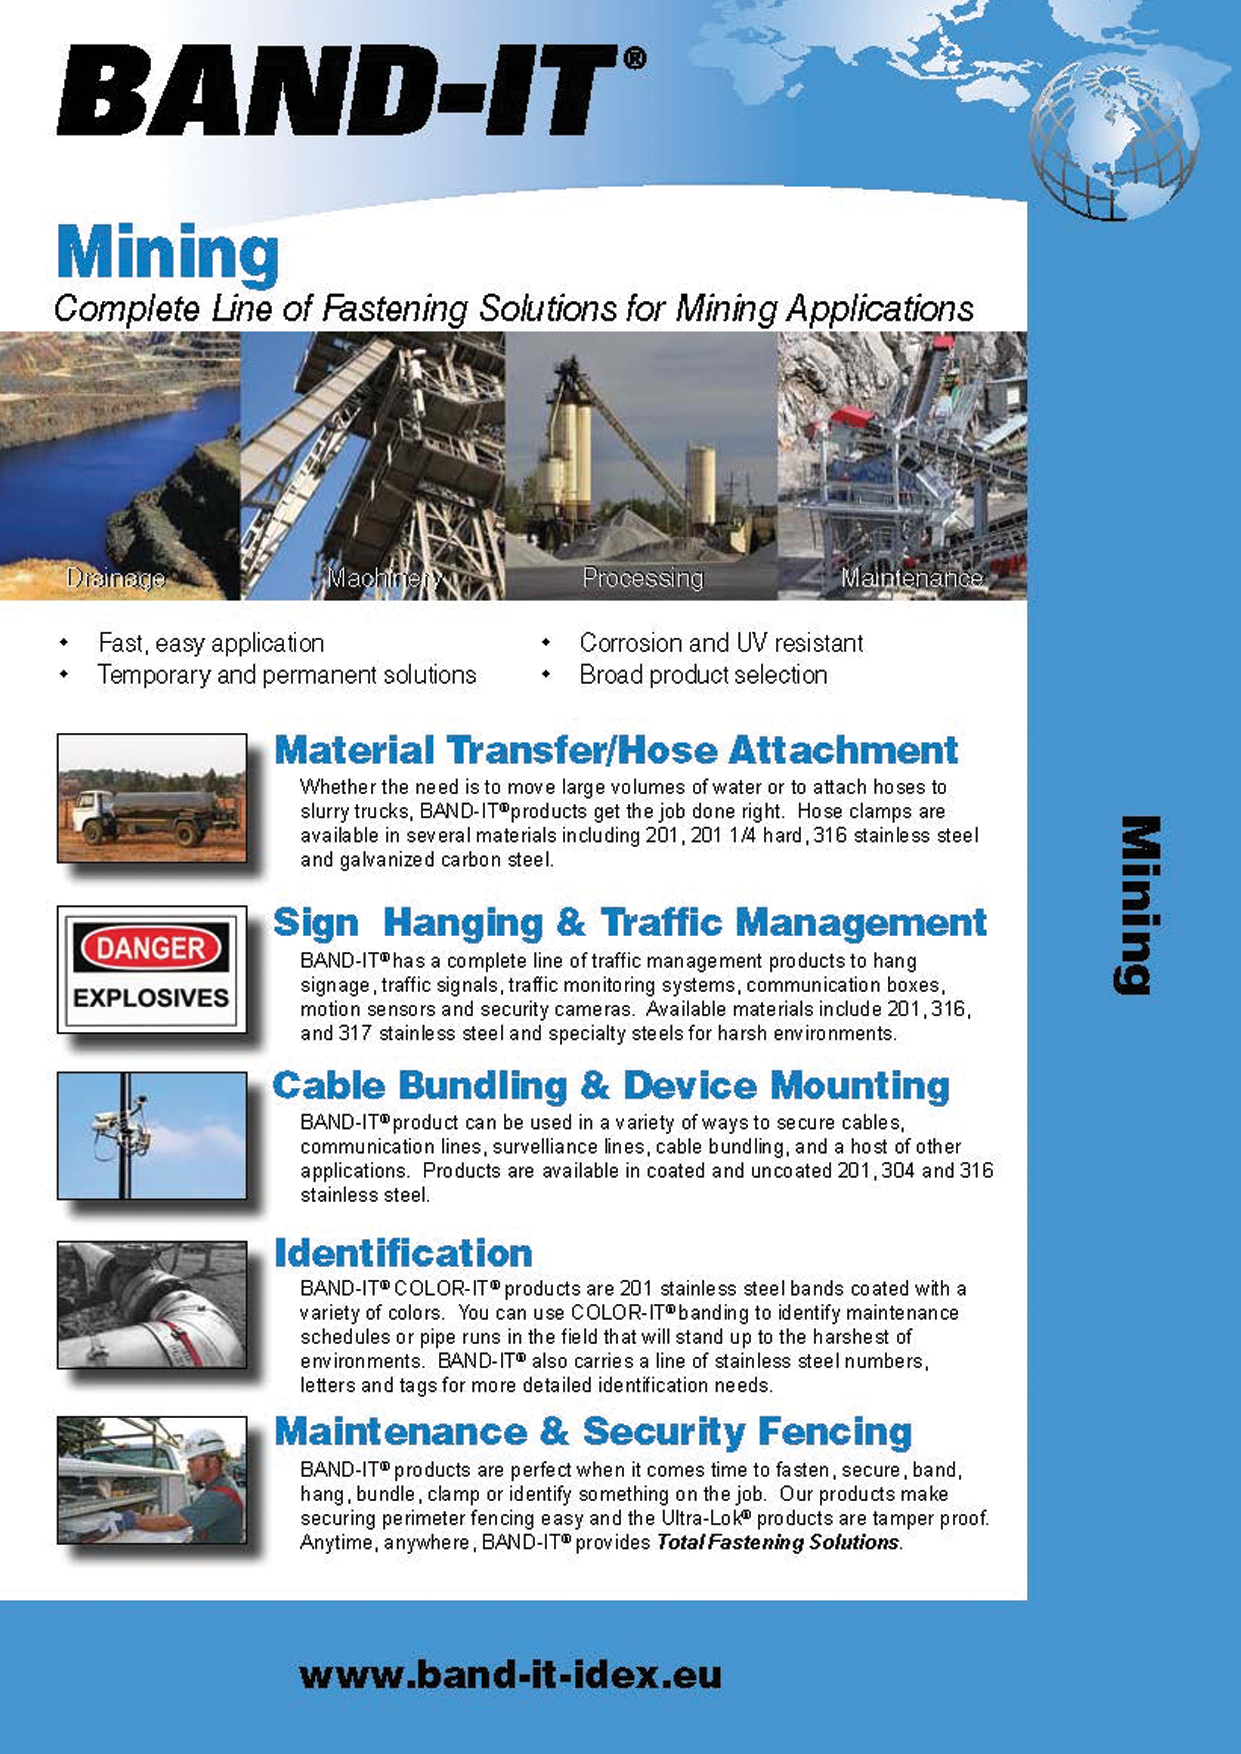 Mining - Complete Line of Fastening Solutions for Facility Maintenance Applications